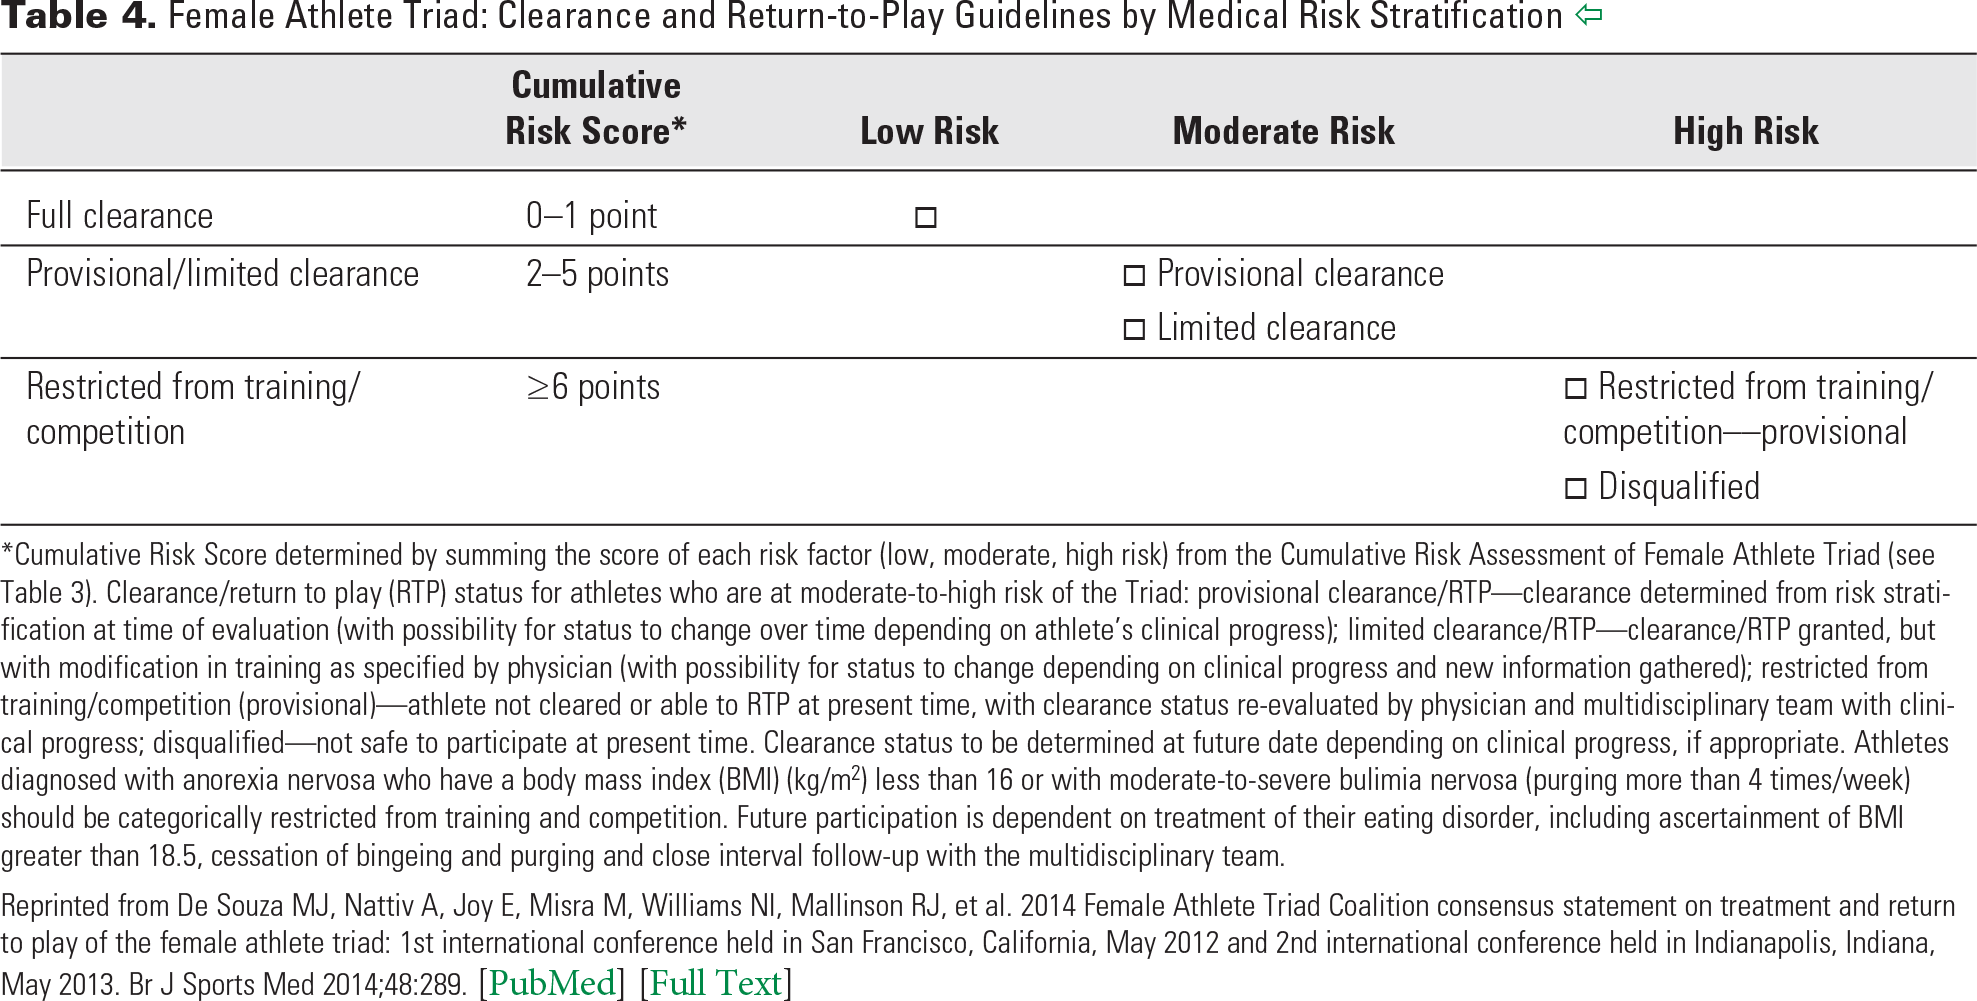 Table 4. Female Athlete Triad: Clearance and Return-to-Play Guidelines by Medical Risk Stratification